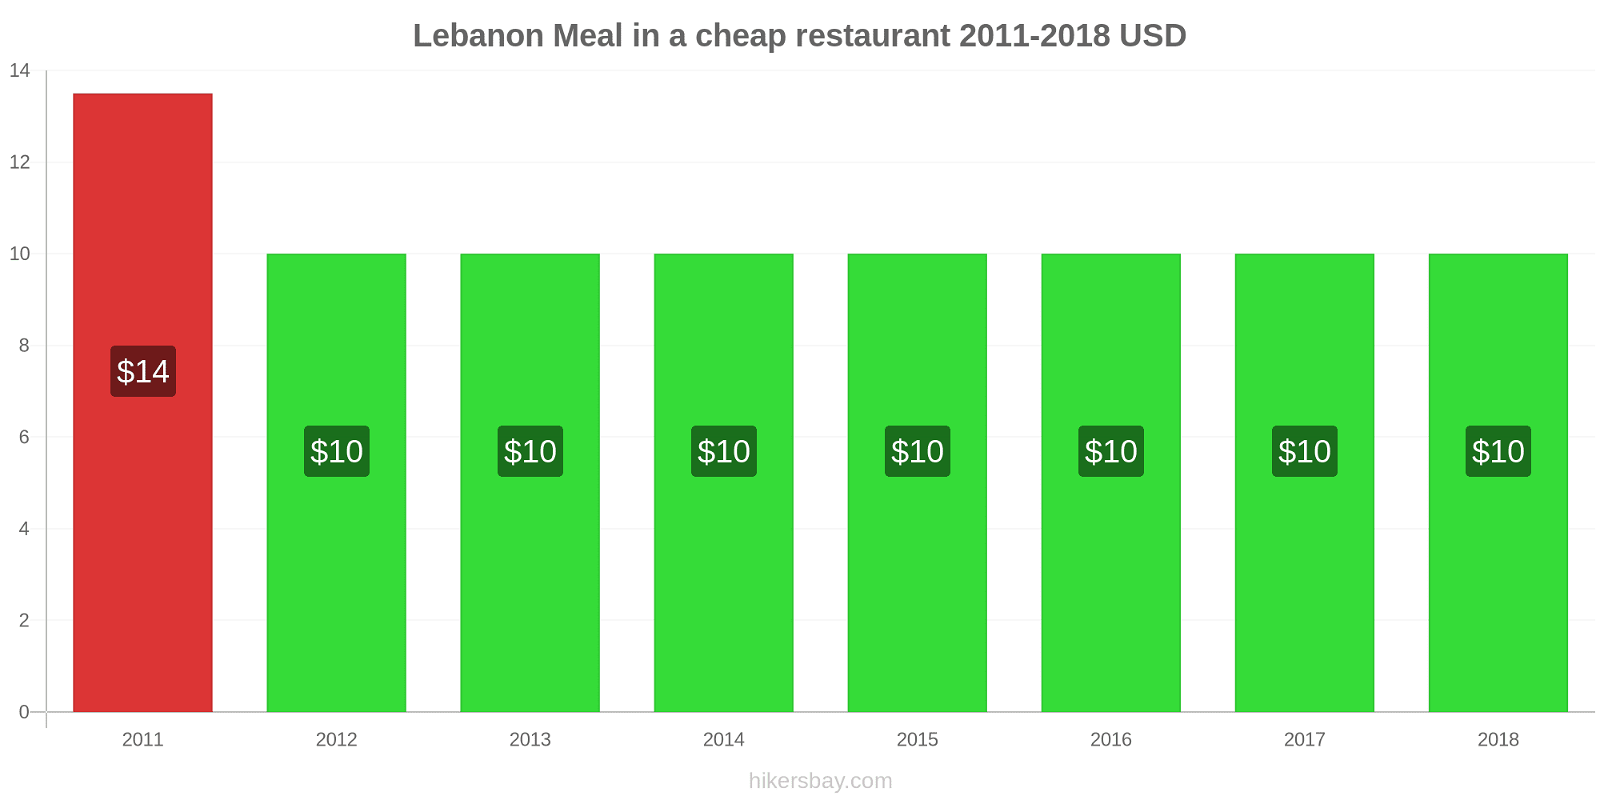 Lebanon price changes Meal in a cheap restaurant hikersbay.com